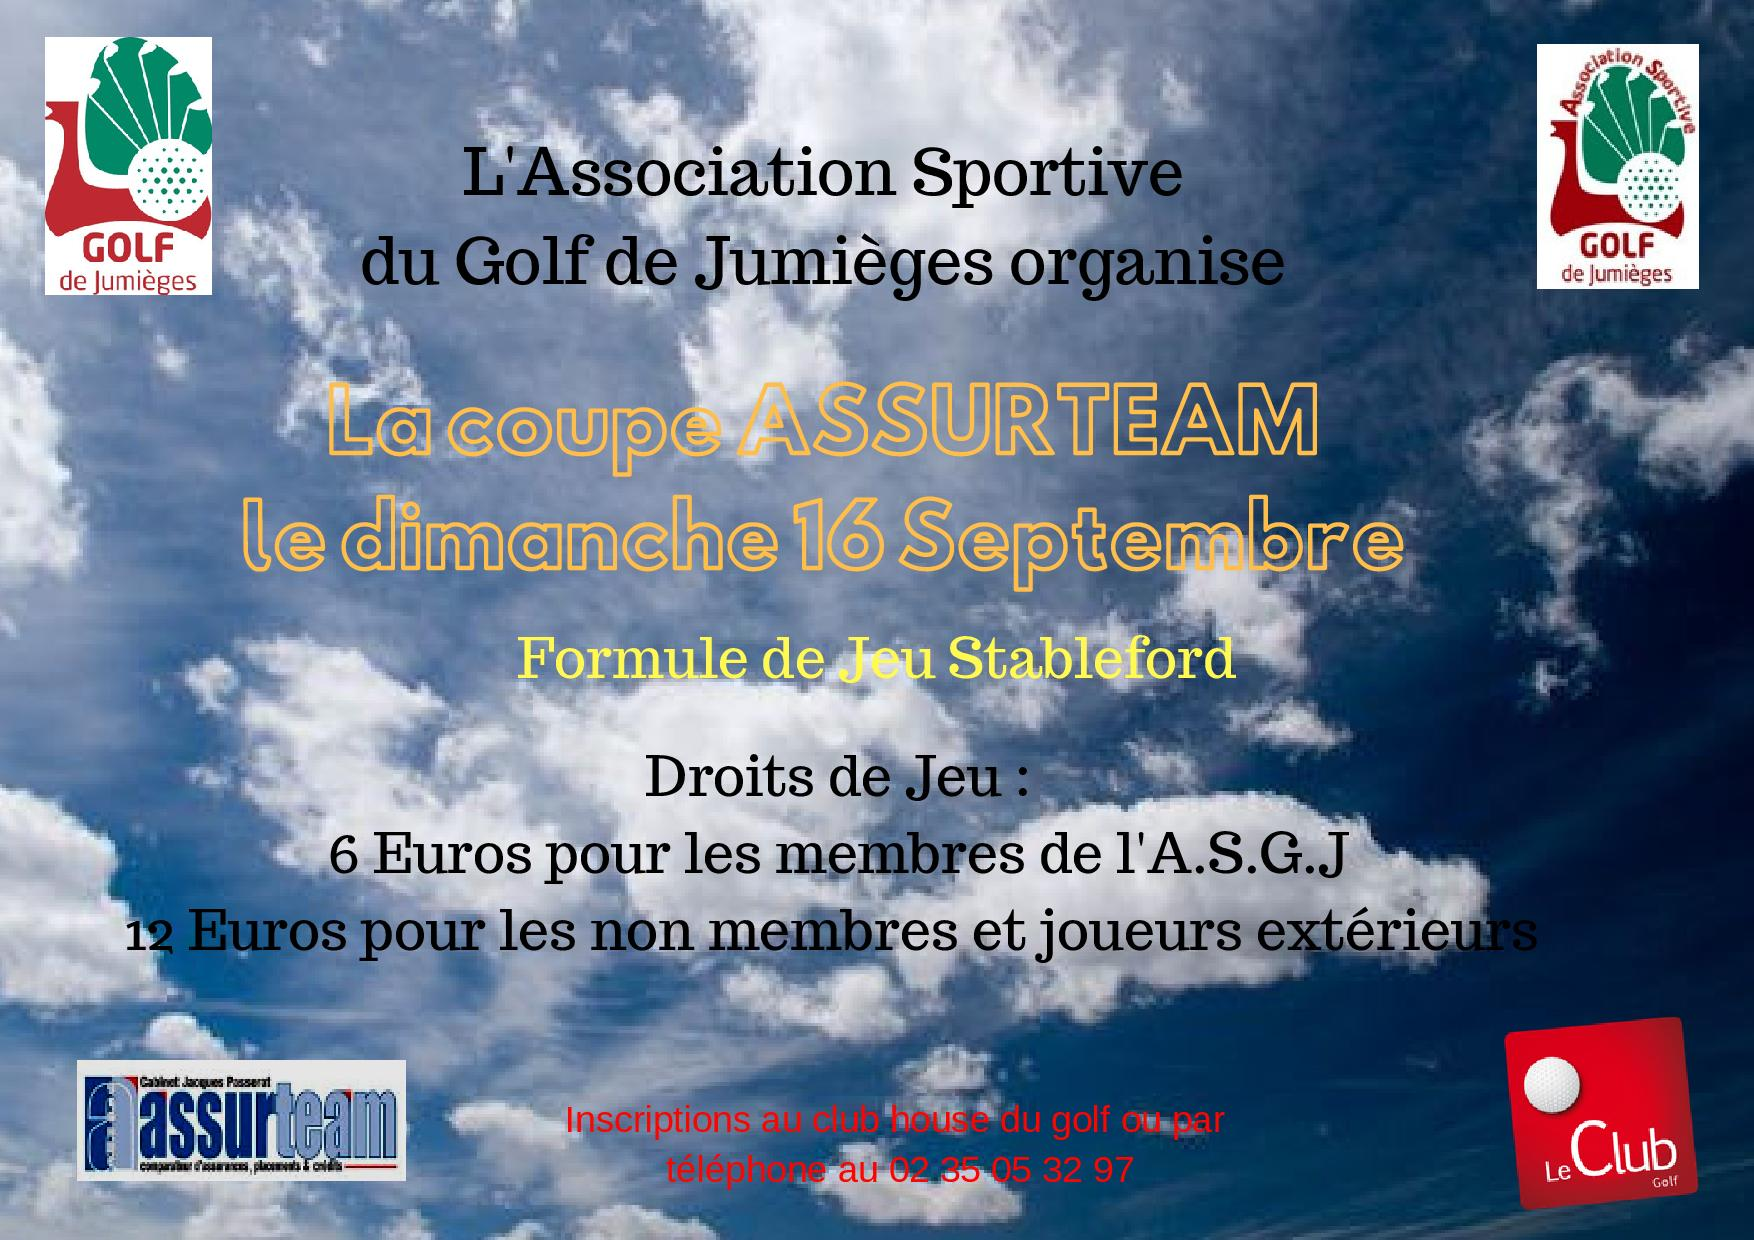 coupe assurteam-page-001.jpg